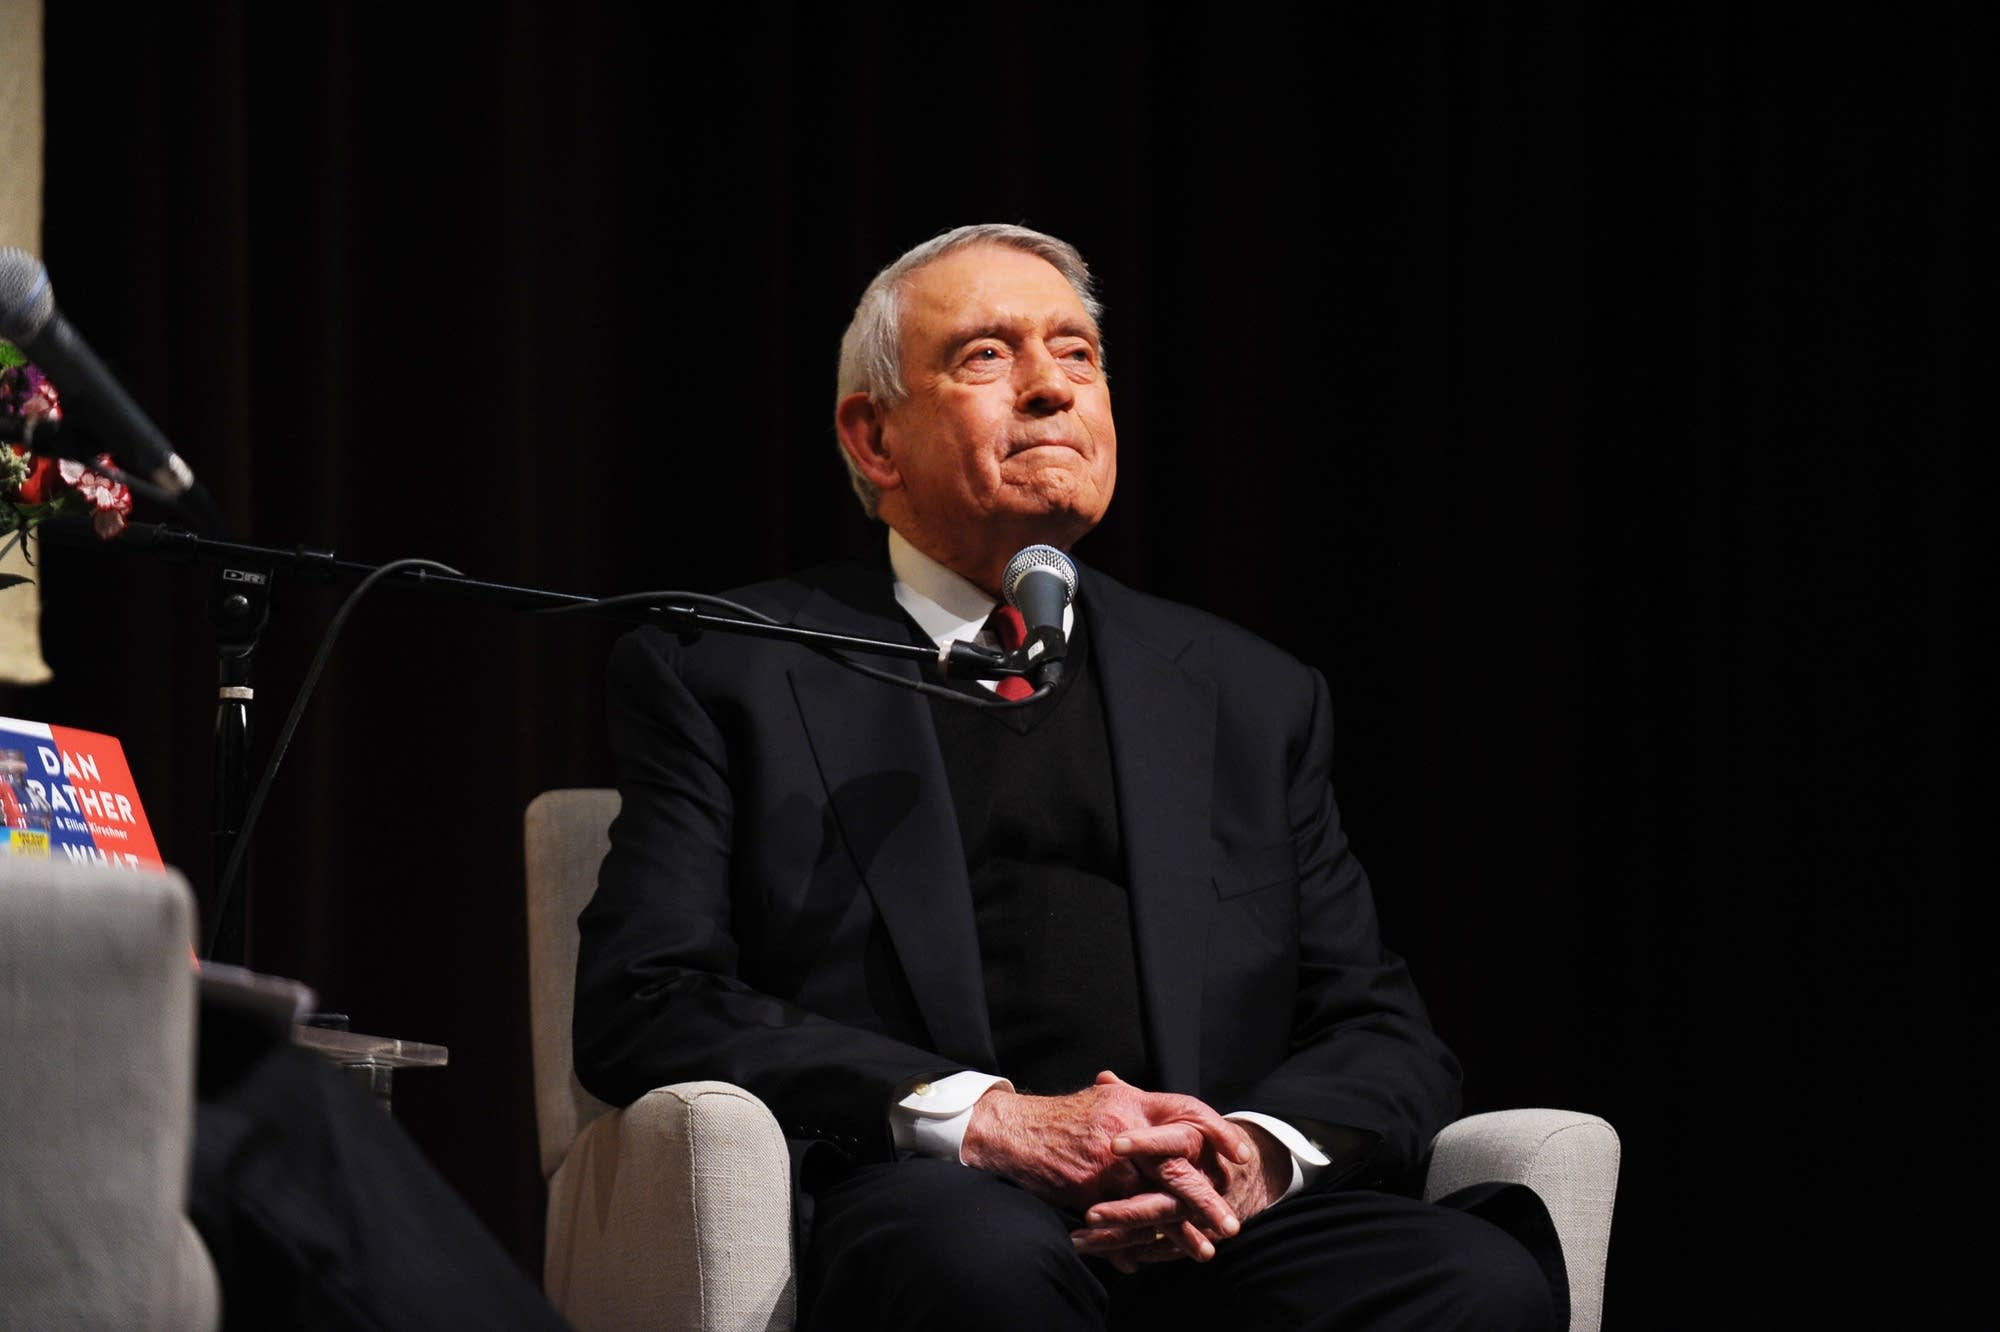 Journalist Dan Rather